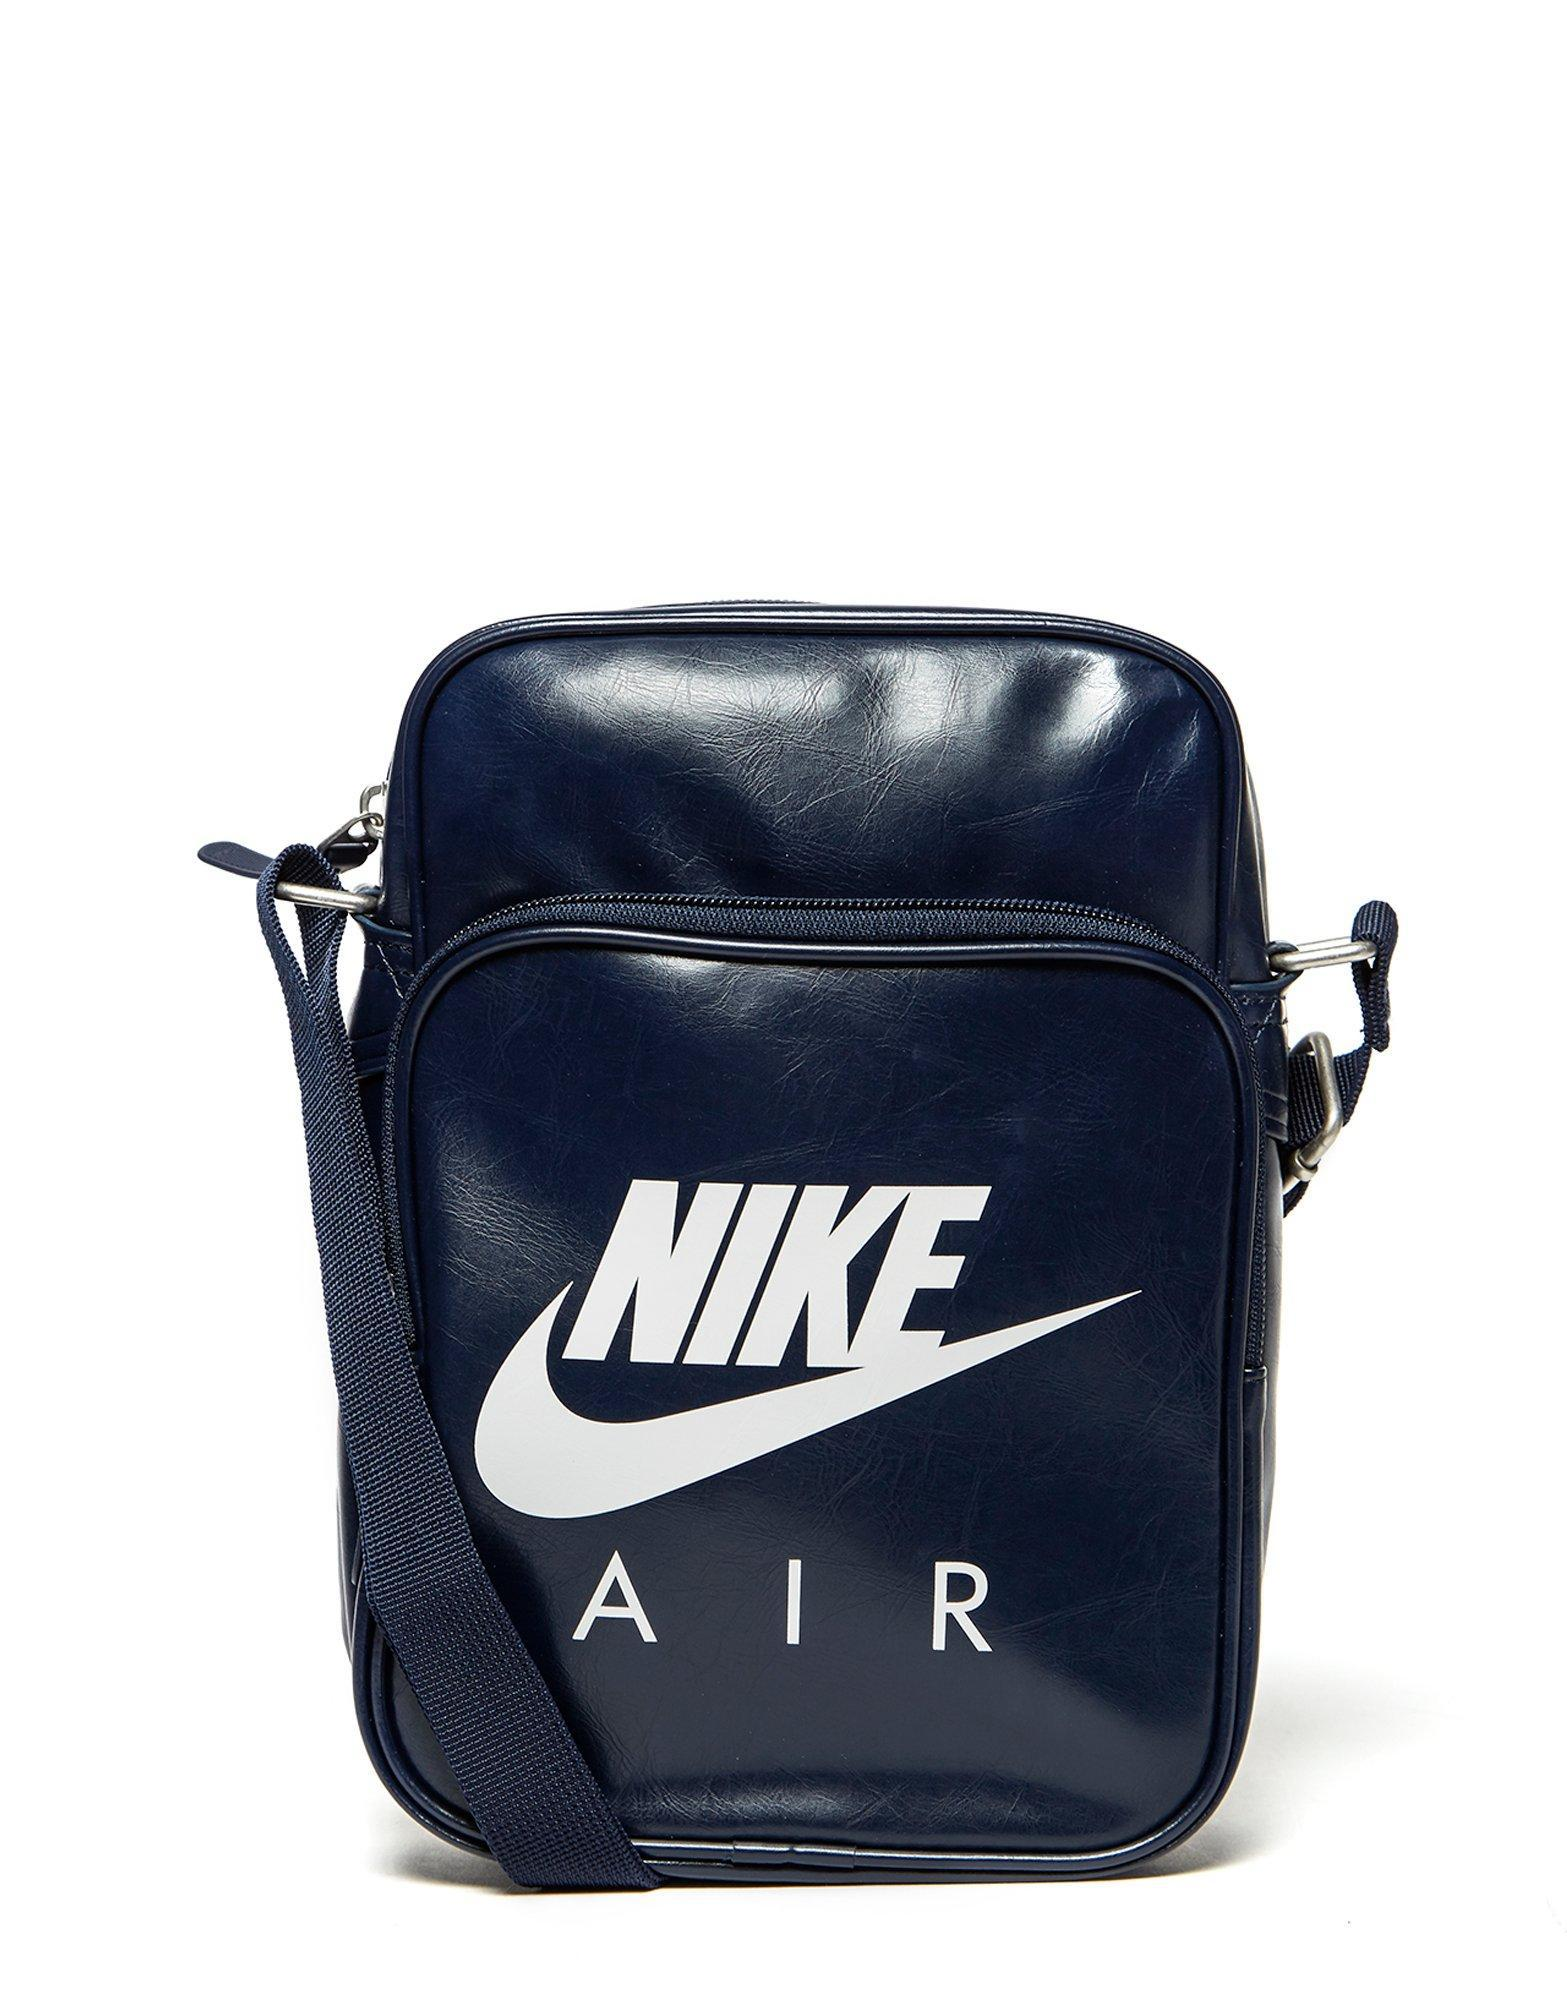 b772ca491593 Nike Air Small Items Bag in Blue for Men - Lyst